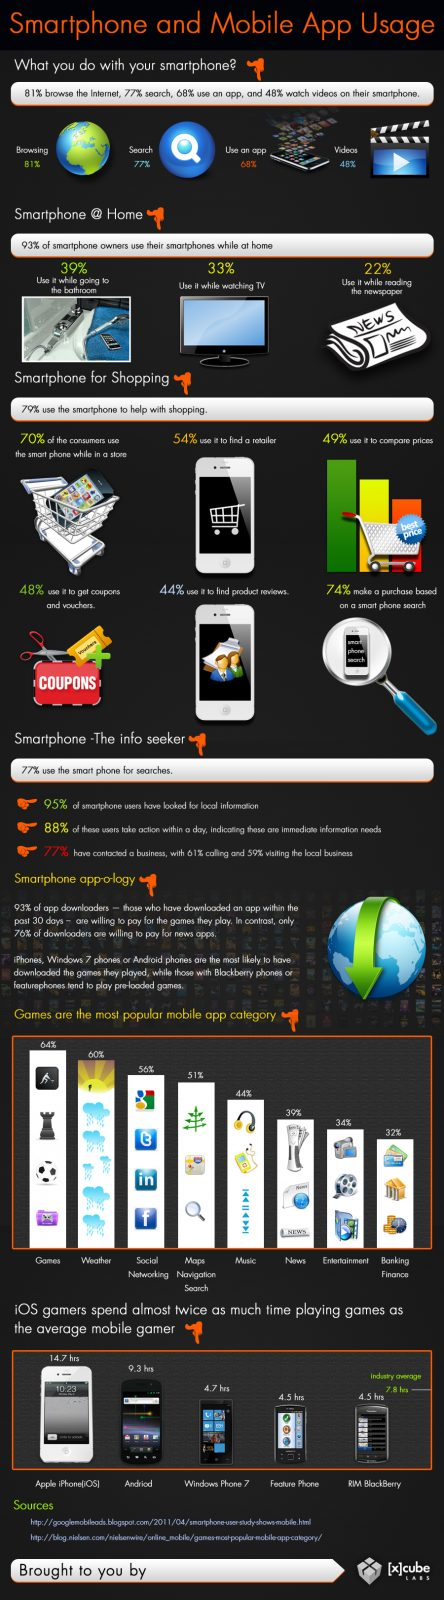 smartphone-mobile-app-usage